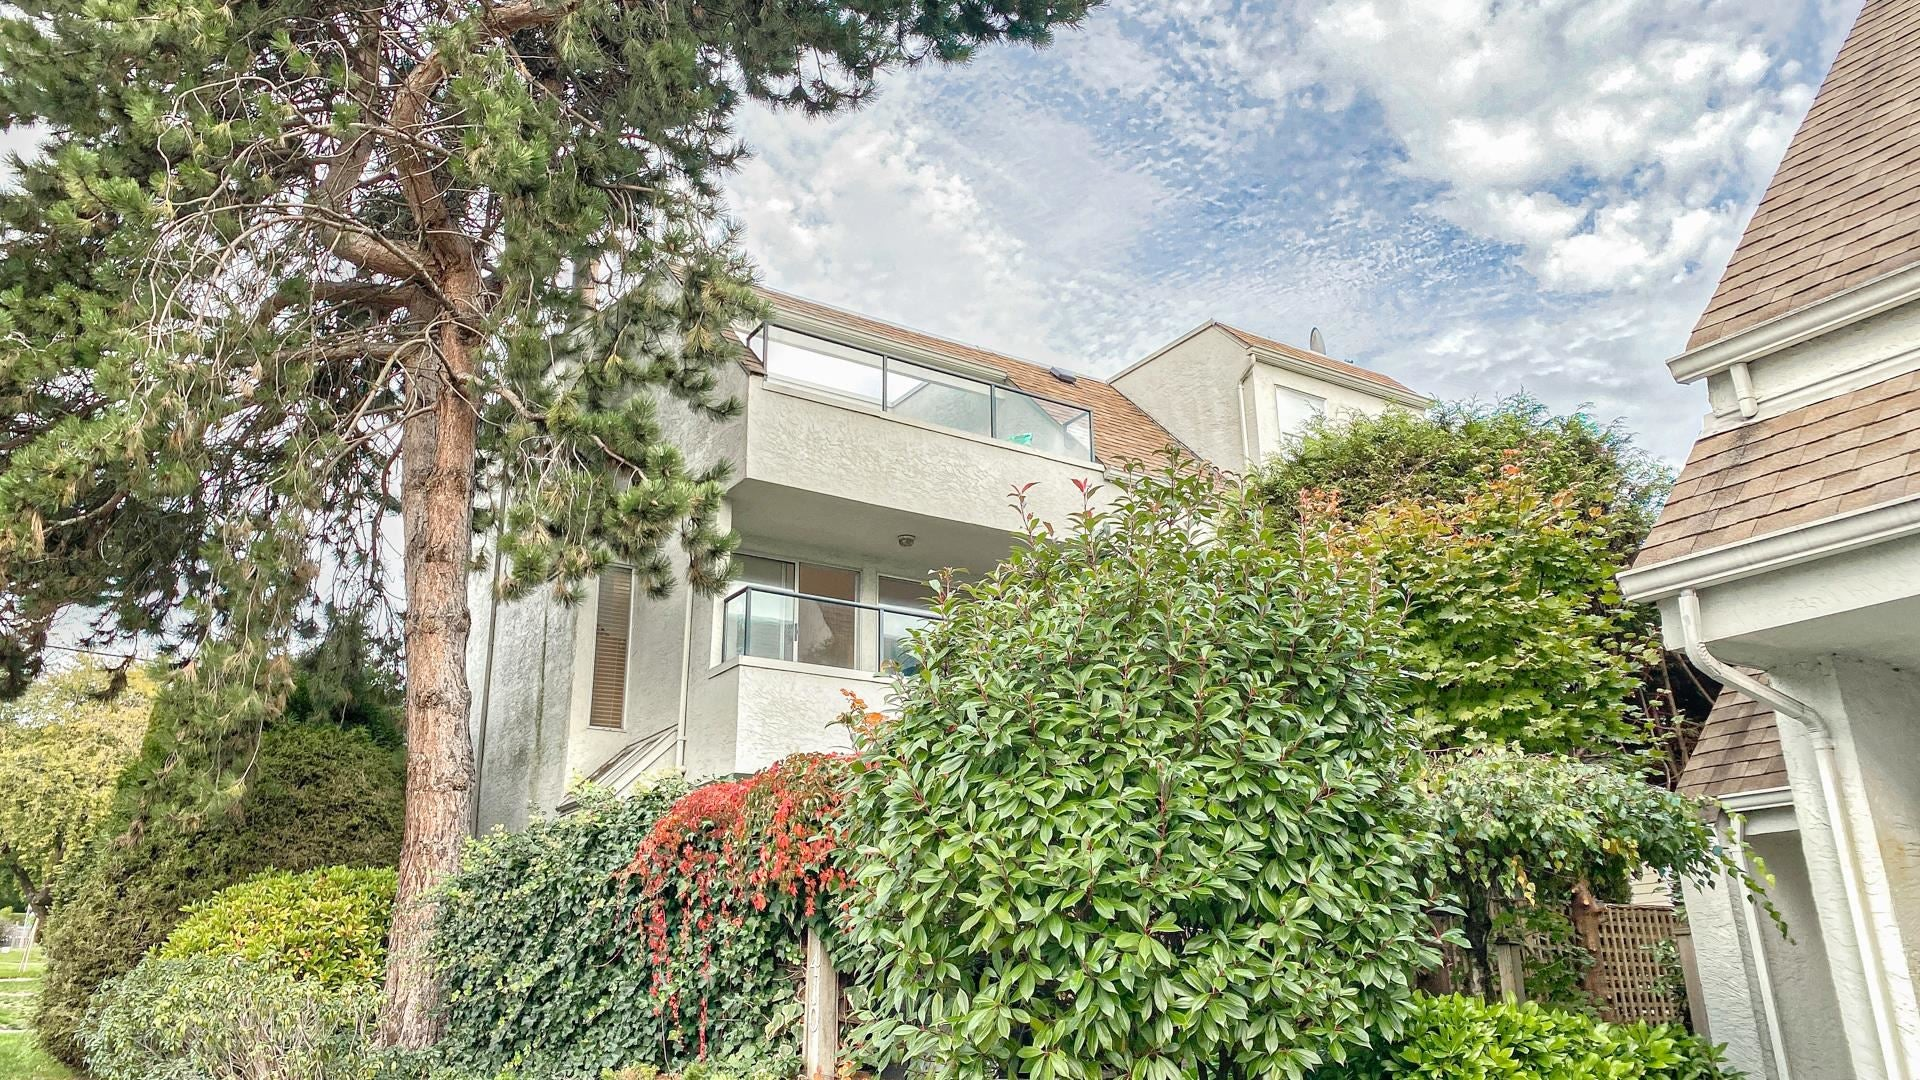 1 410 MAHON AVENUE - Lower Lonsdale Townhouse for sale, 2 Bedrooms (R2623610) - #2